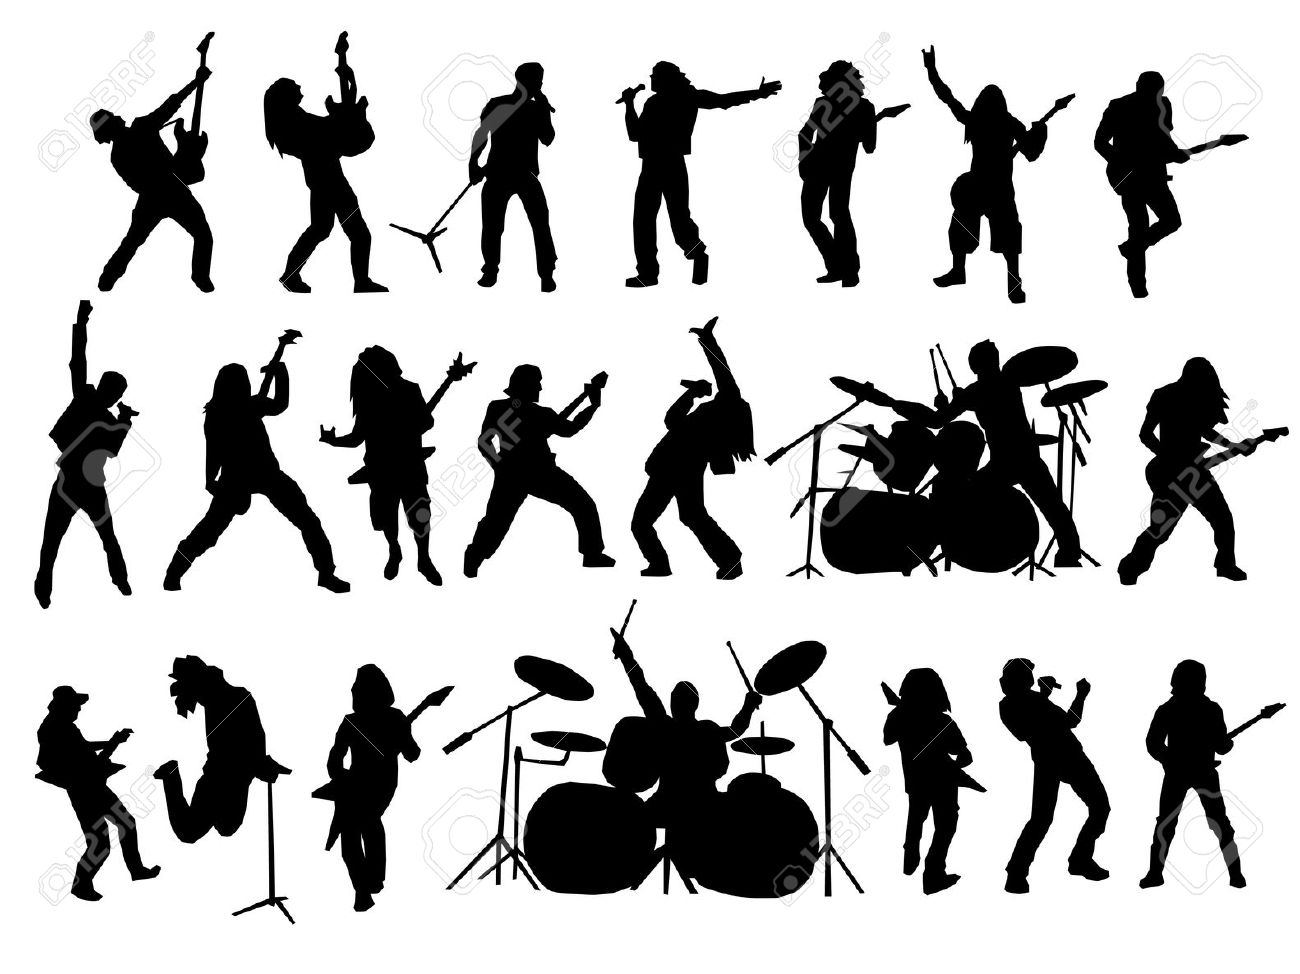 hight resolution of rock band silhouette clipart